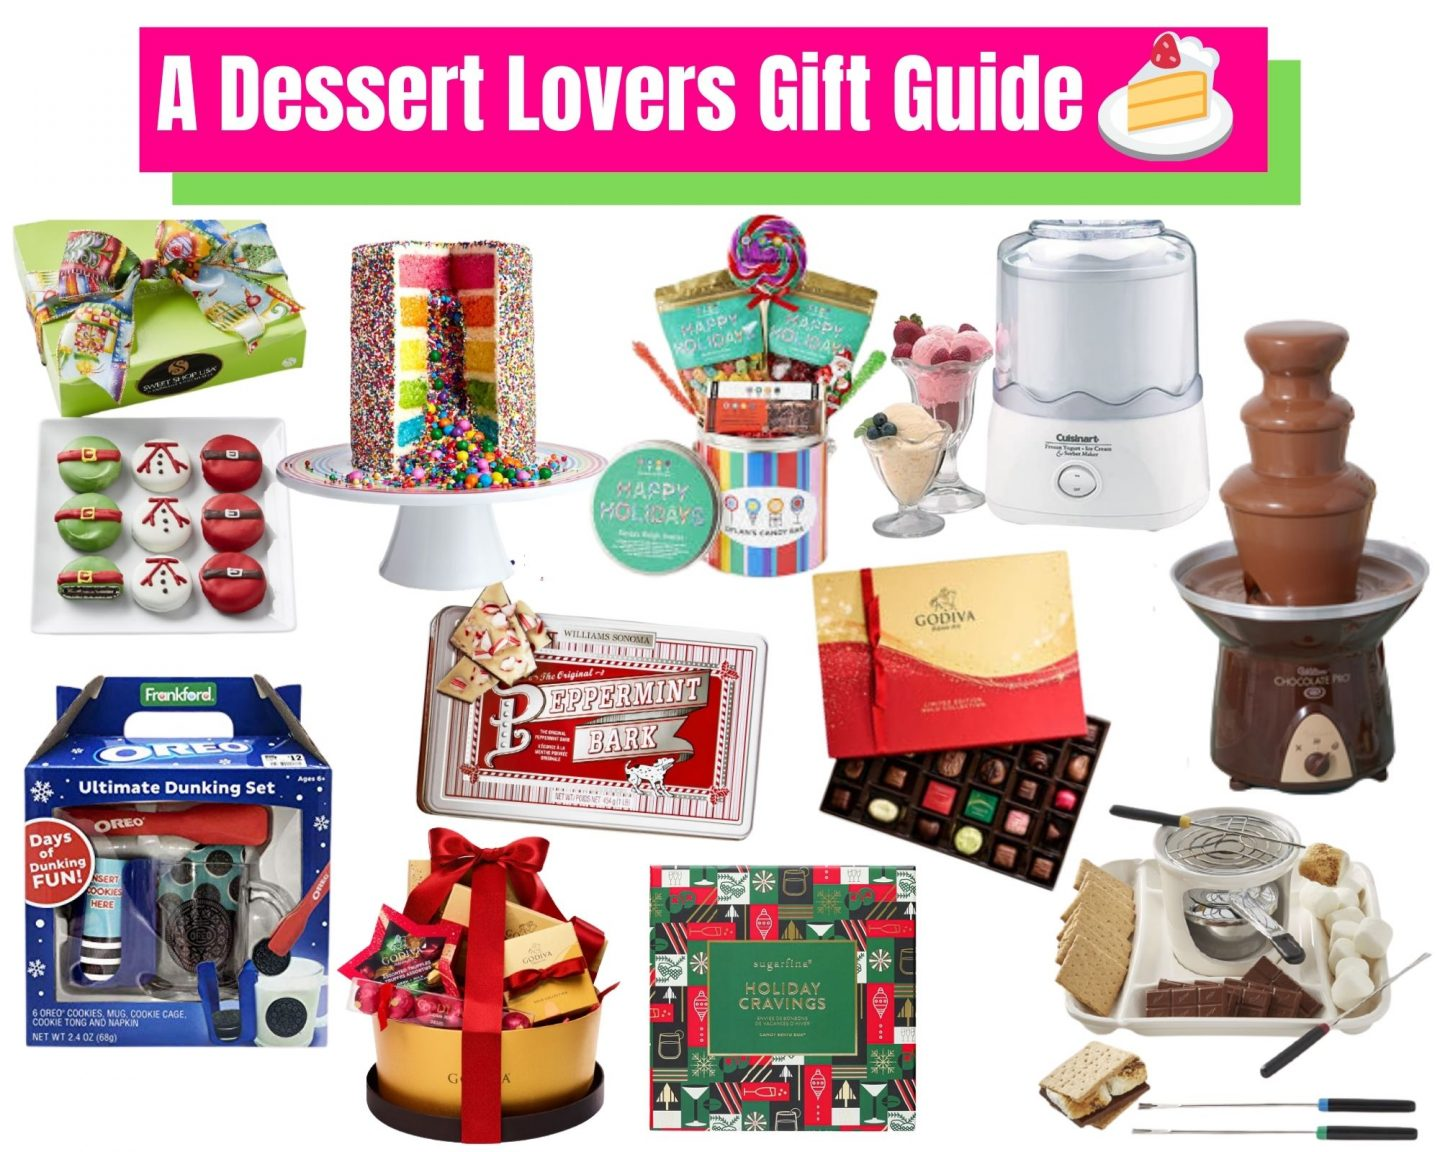 A Dessert Lovers Gift Guide!